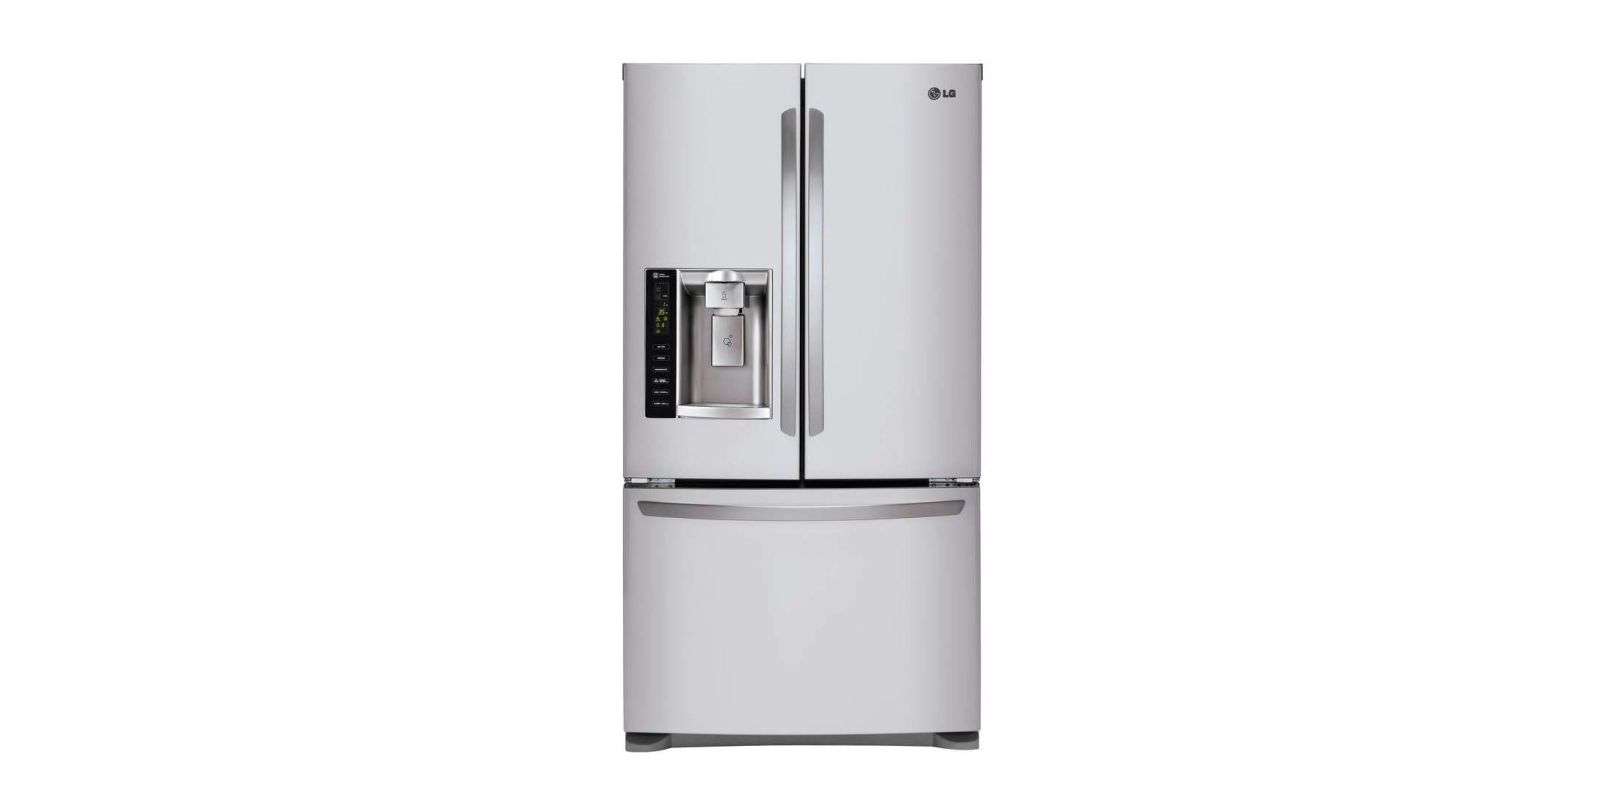 French Door kenmore elite french door refrigerator reviews photos : LG Ultra-Capacity Counter Depth 3 Door French Door Refrigerator ...